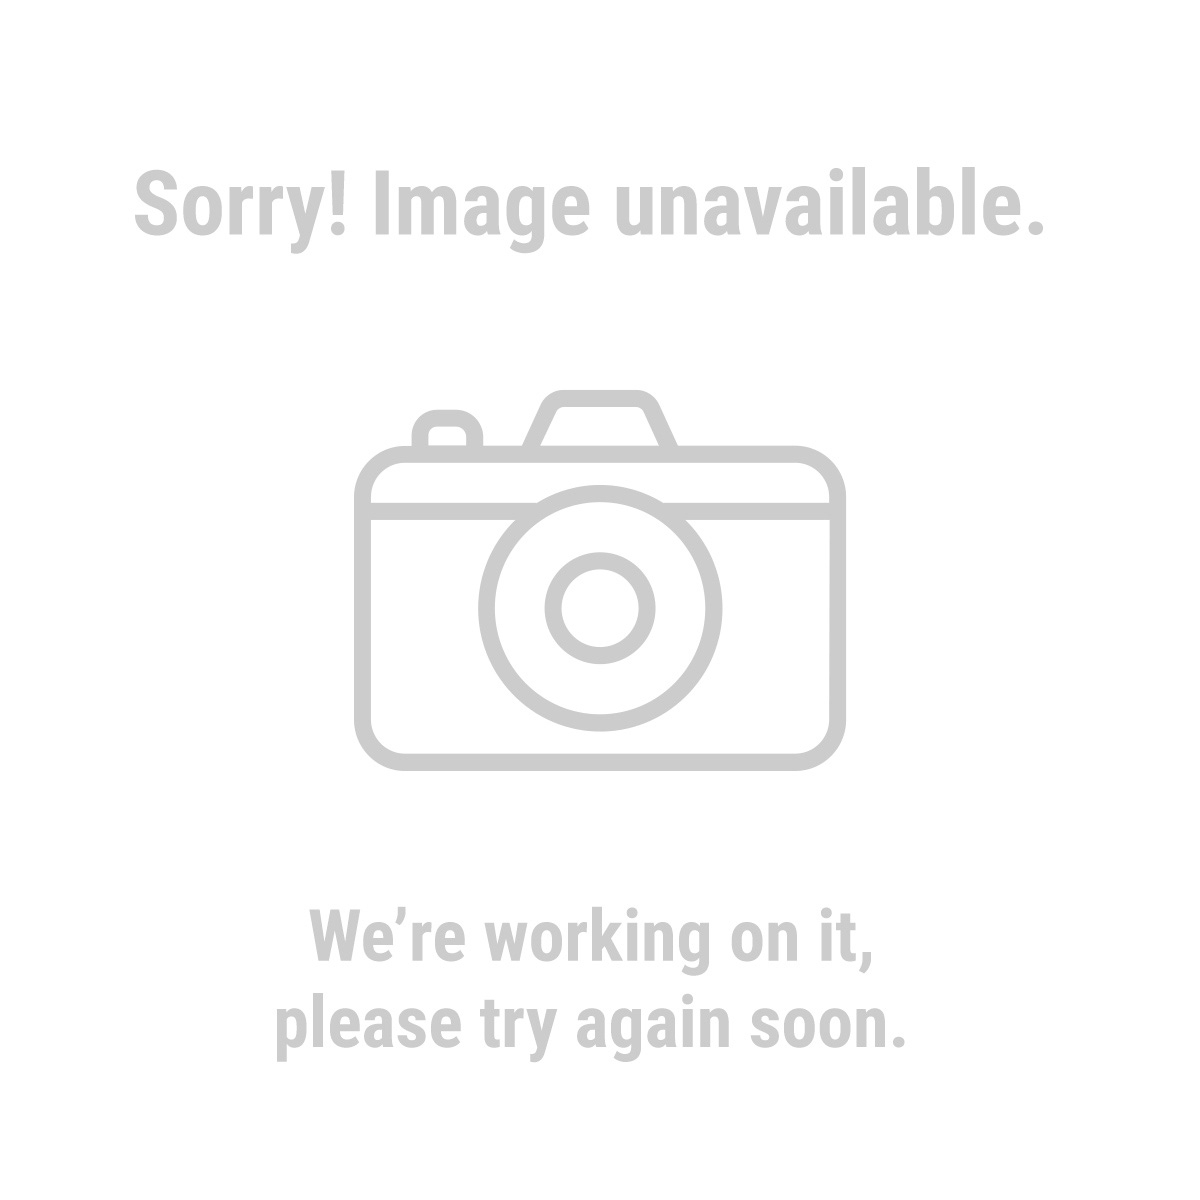 Interdynamics 97275 18 Oz. Arctic Freeze Refrigerant with Dispenser and Gauge